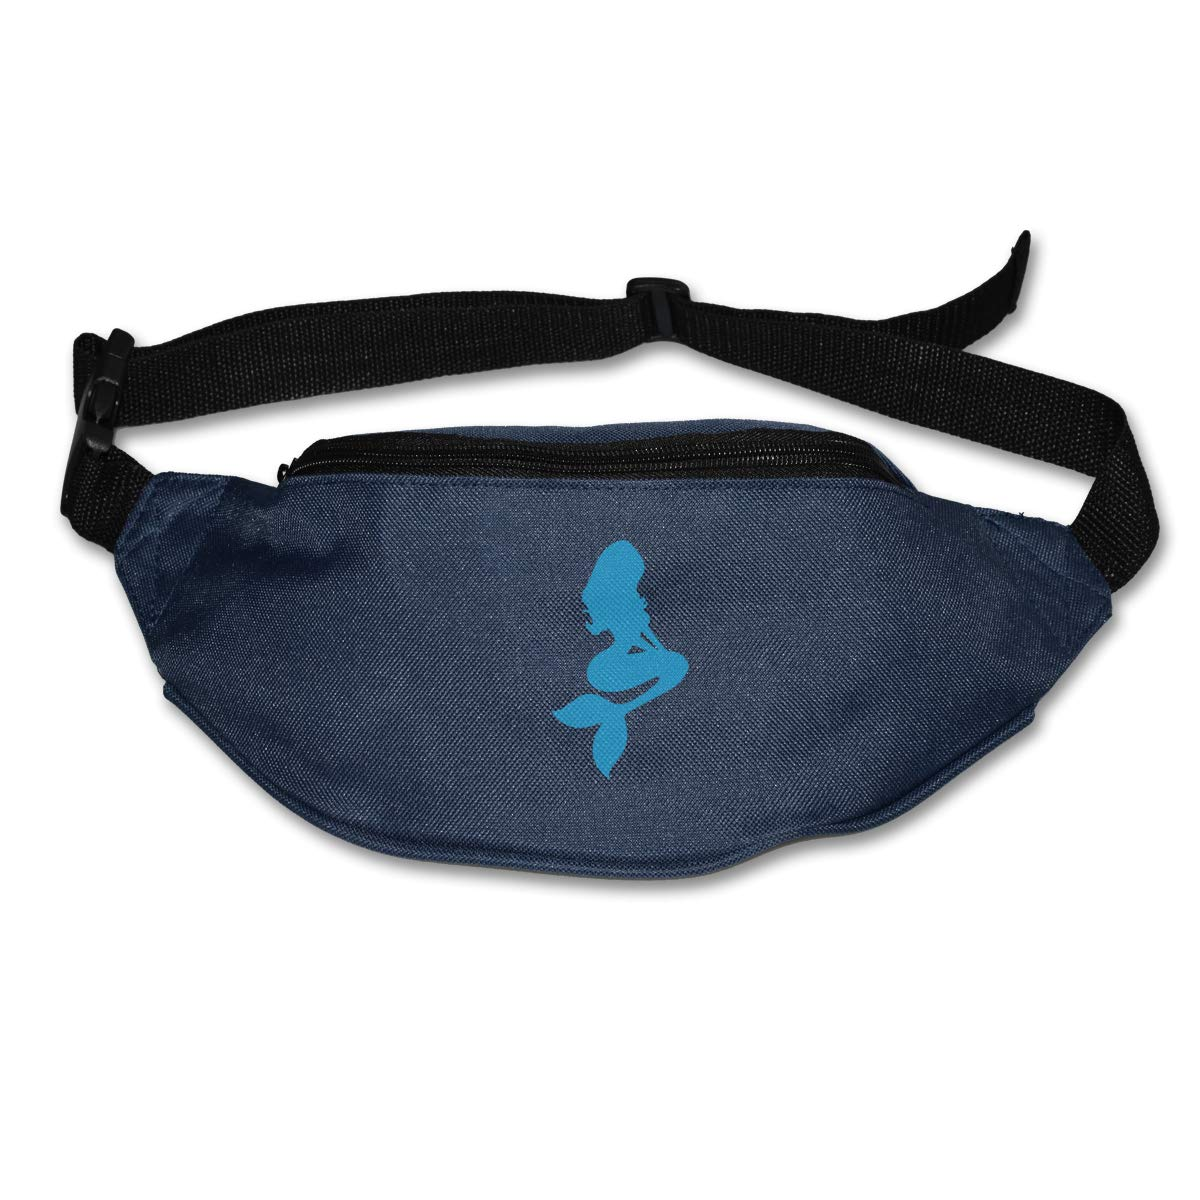 Mermaid Blue Sport Waist Pack Fanny Pack Adjustable For Hike